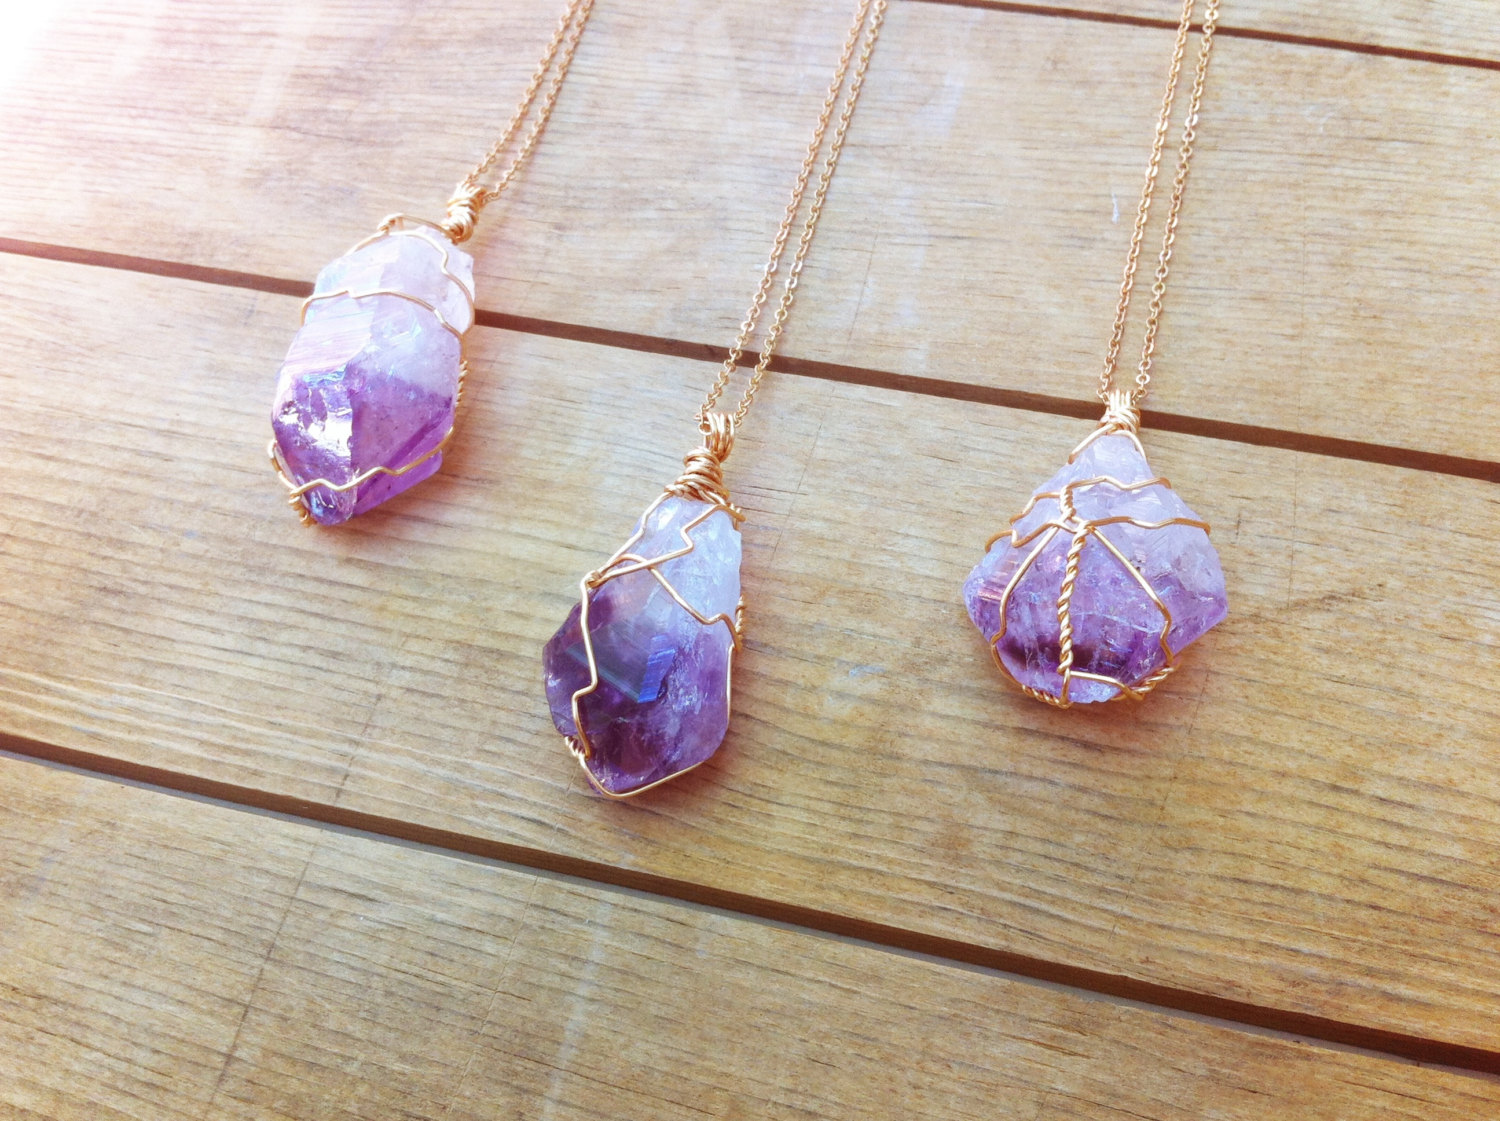 raw gold purple necklaces pendant slice crystal natural quartz jewelry geode chain amethyst